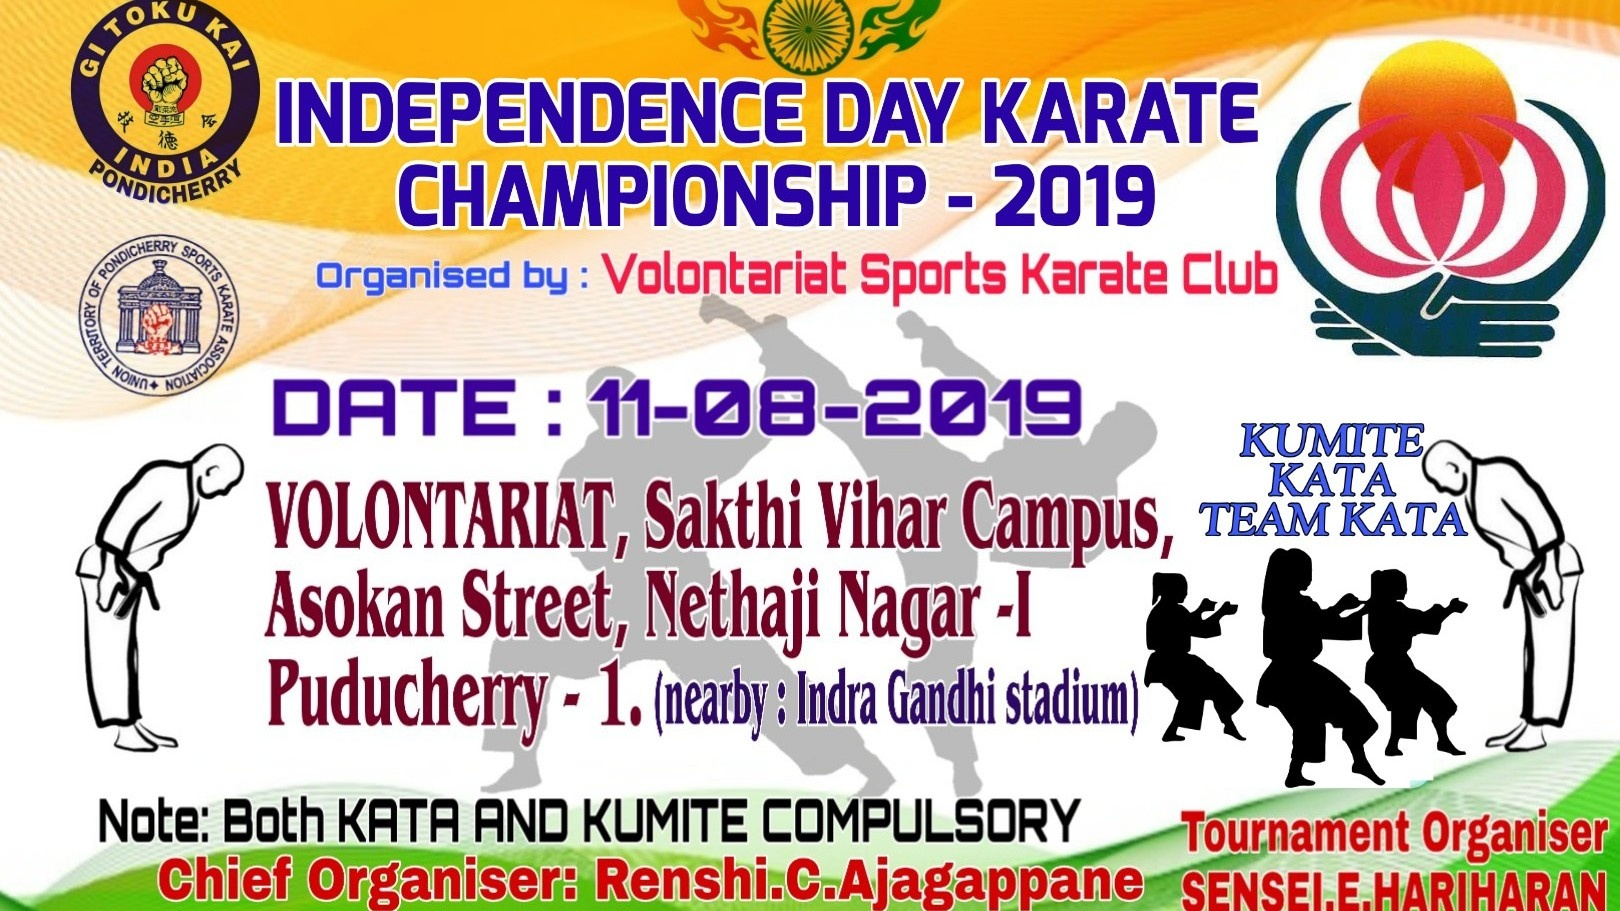 INDEPENDENCE DAY KARATE CHAMPIONSHIP 2019 - SponsorMyEvent